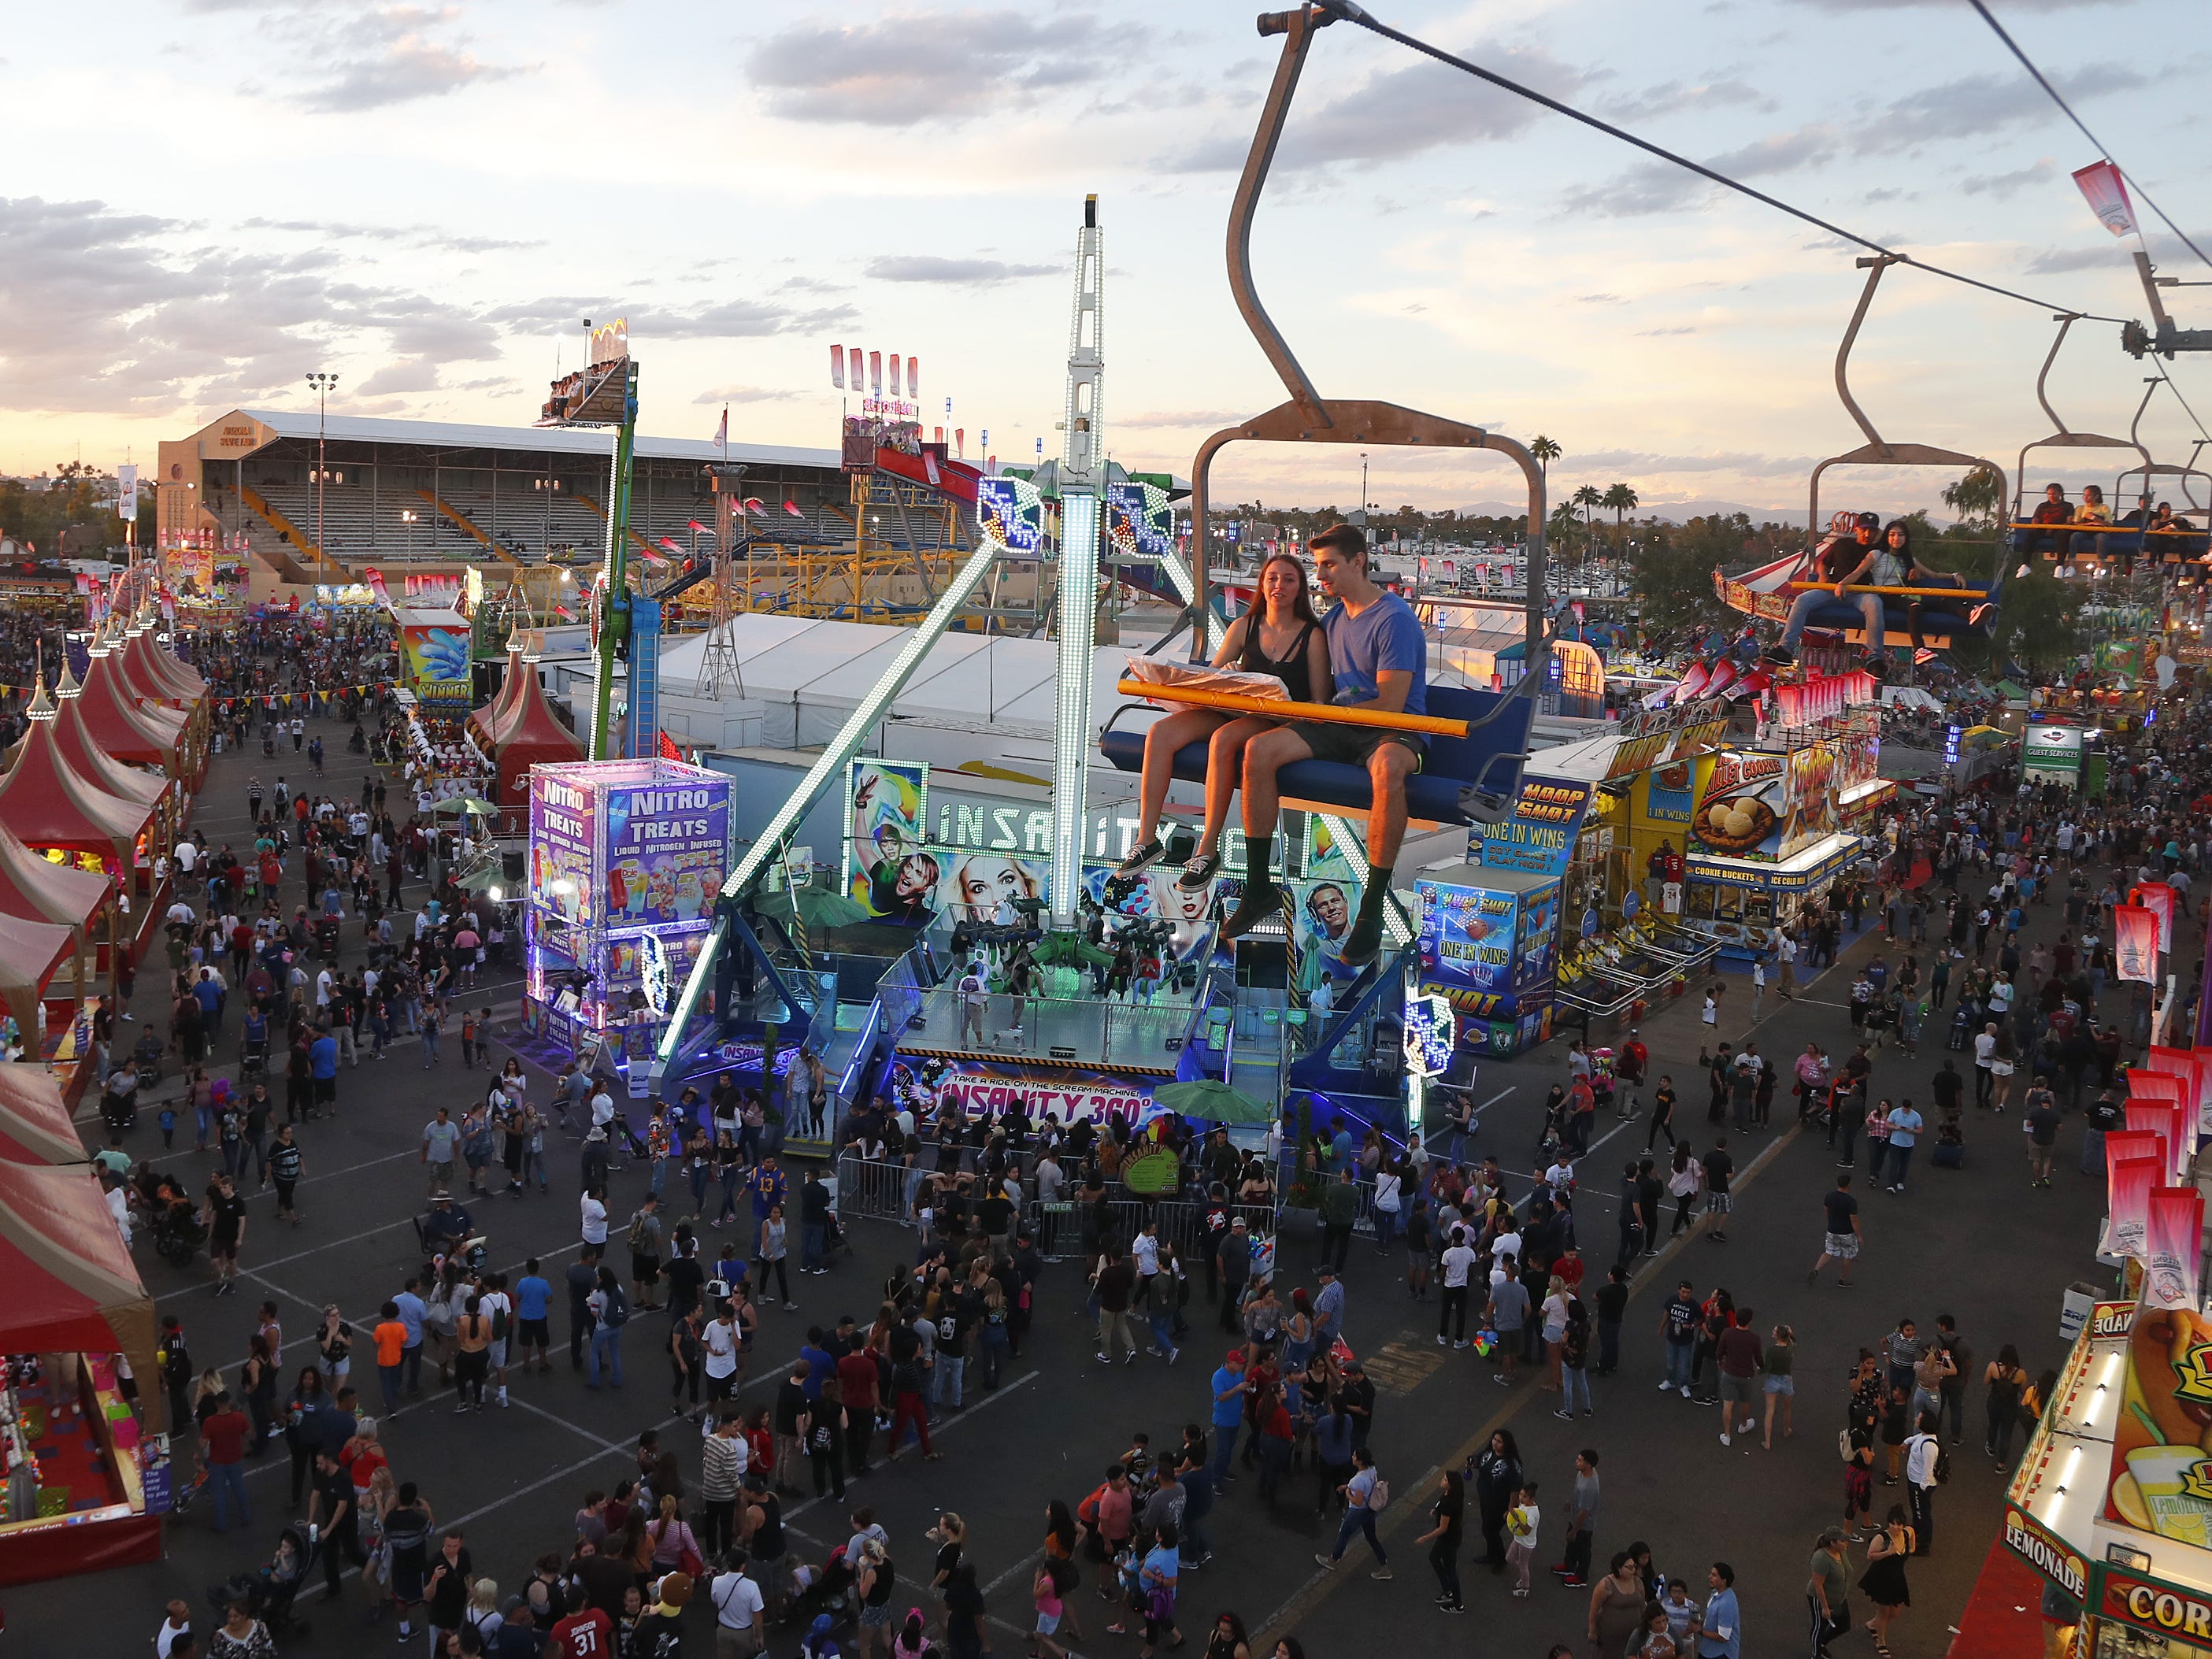 Fair-goers check out the sky ride at the Arizona State Fair in Phoenix, Ariz. on October 21, 2018.